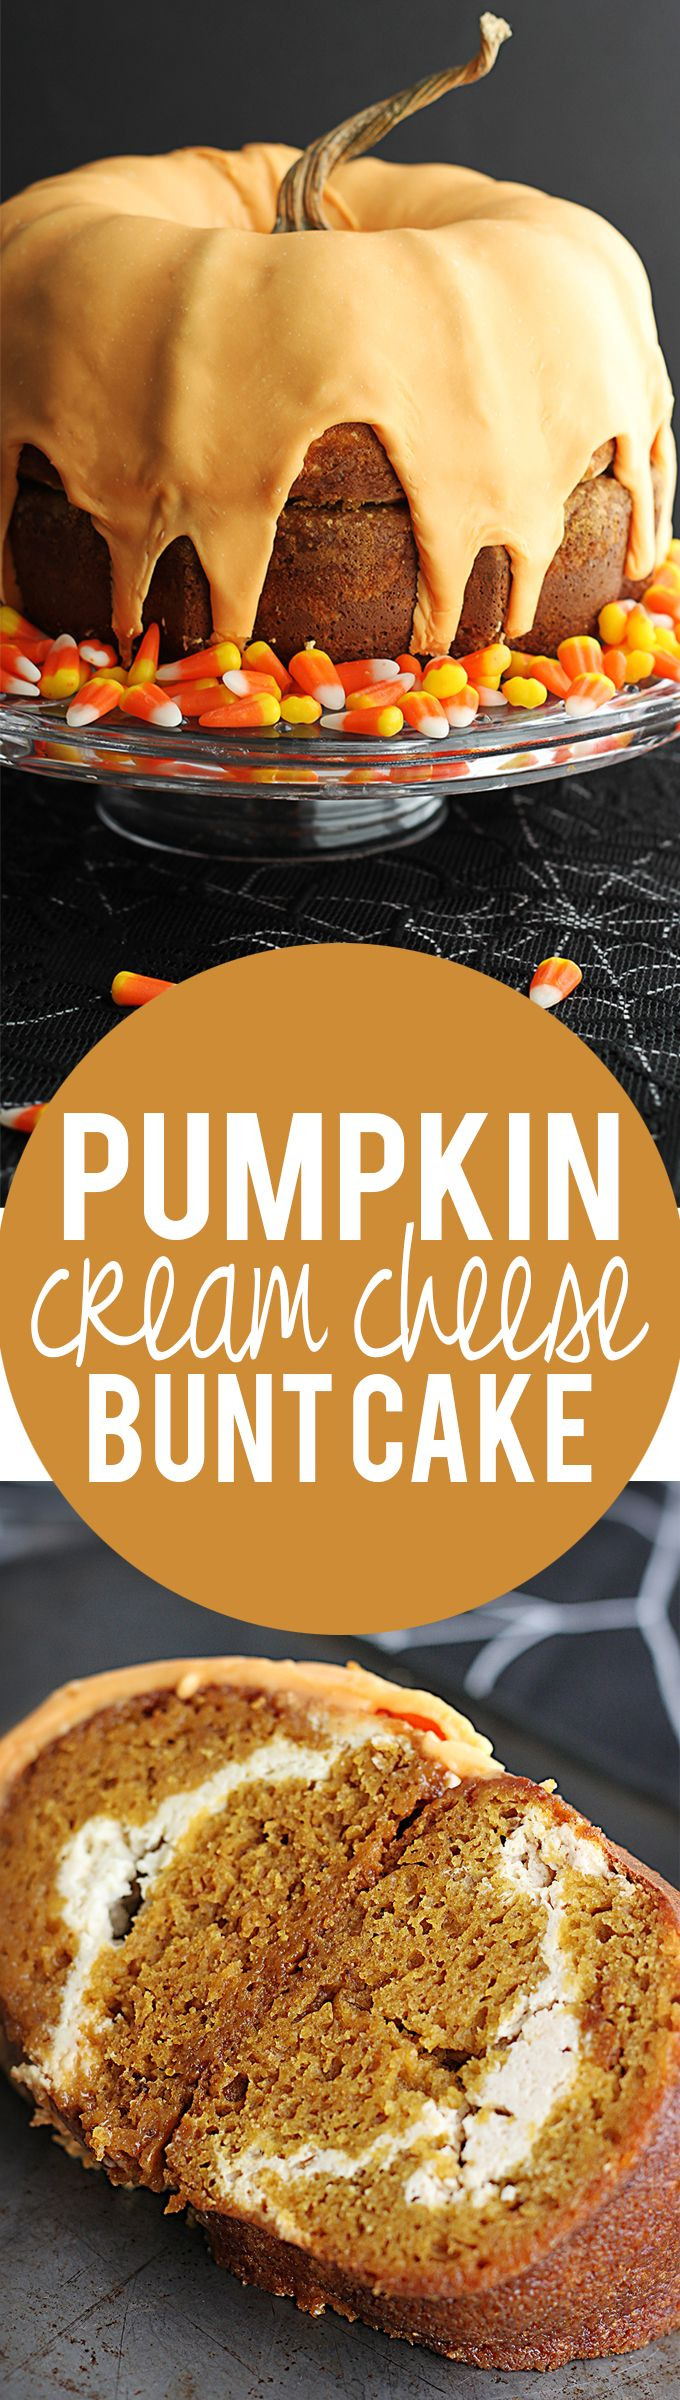 Pumpkin Cream Cheese Bunt Cake - A perfect centerpiece and hit dessert for your holiday party this season!